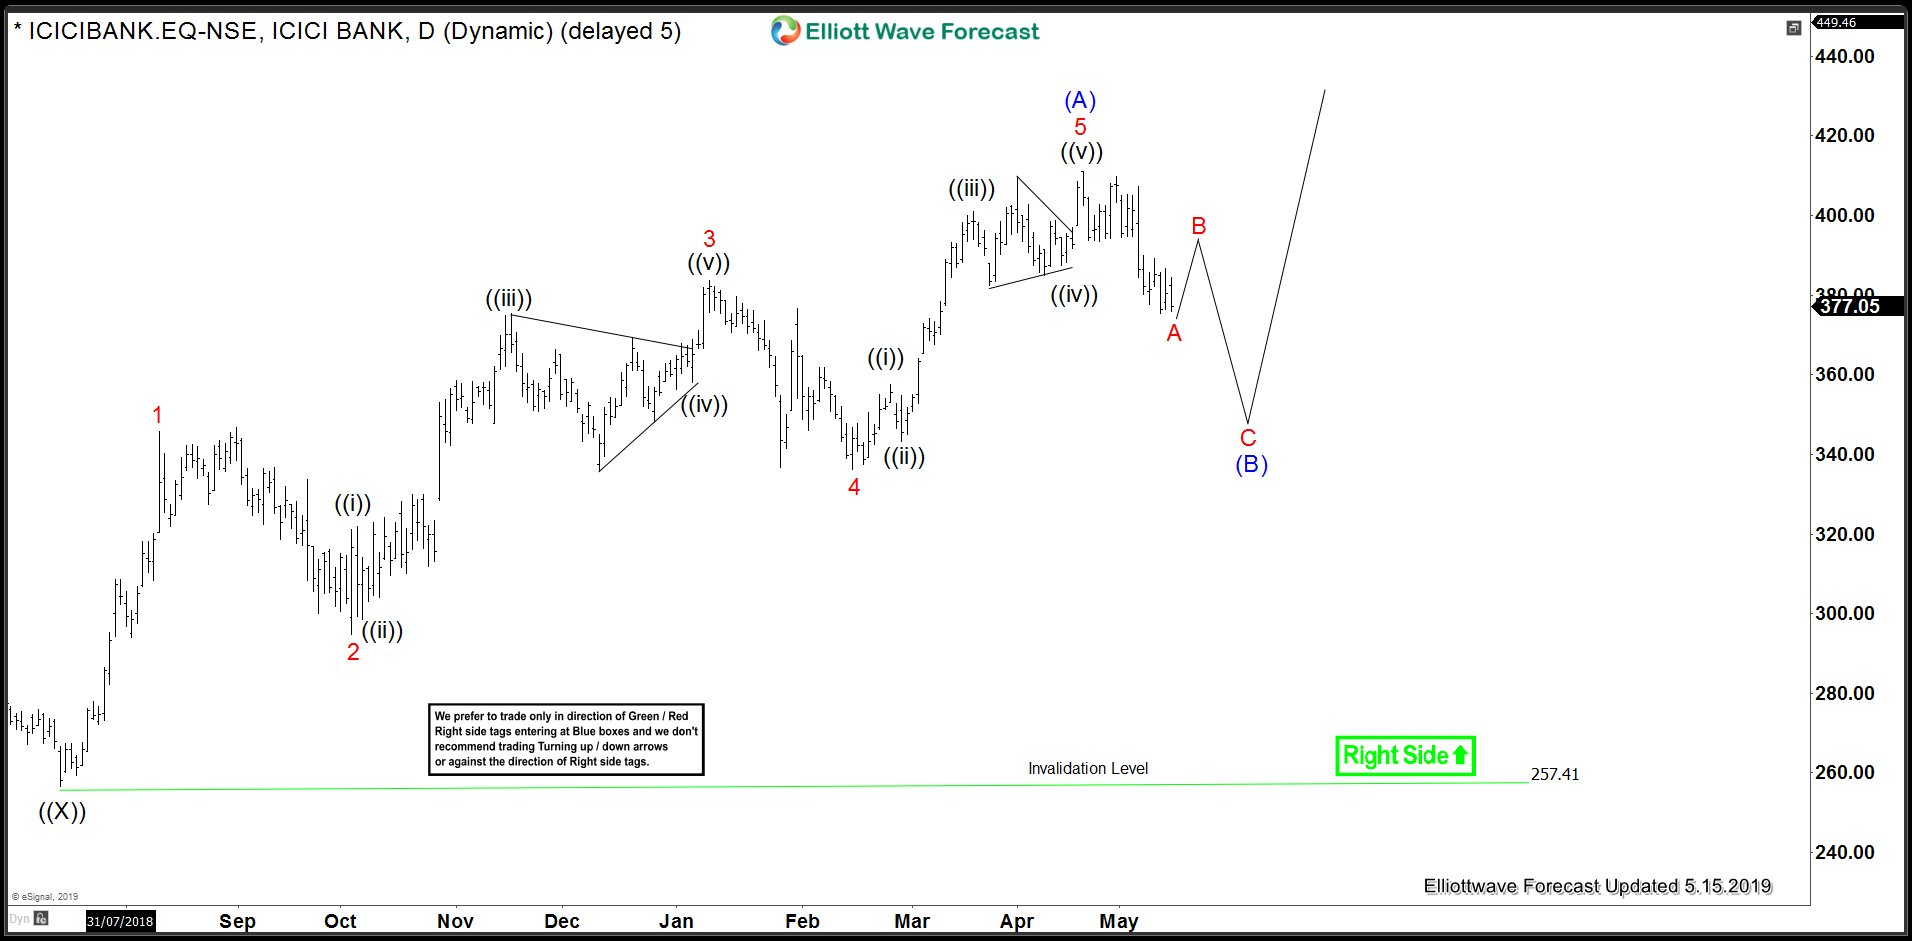 ICIC Bank Elliott Wave View Calls For Correction but Still